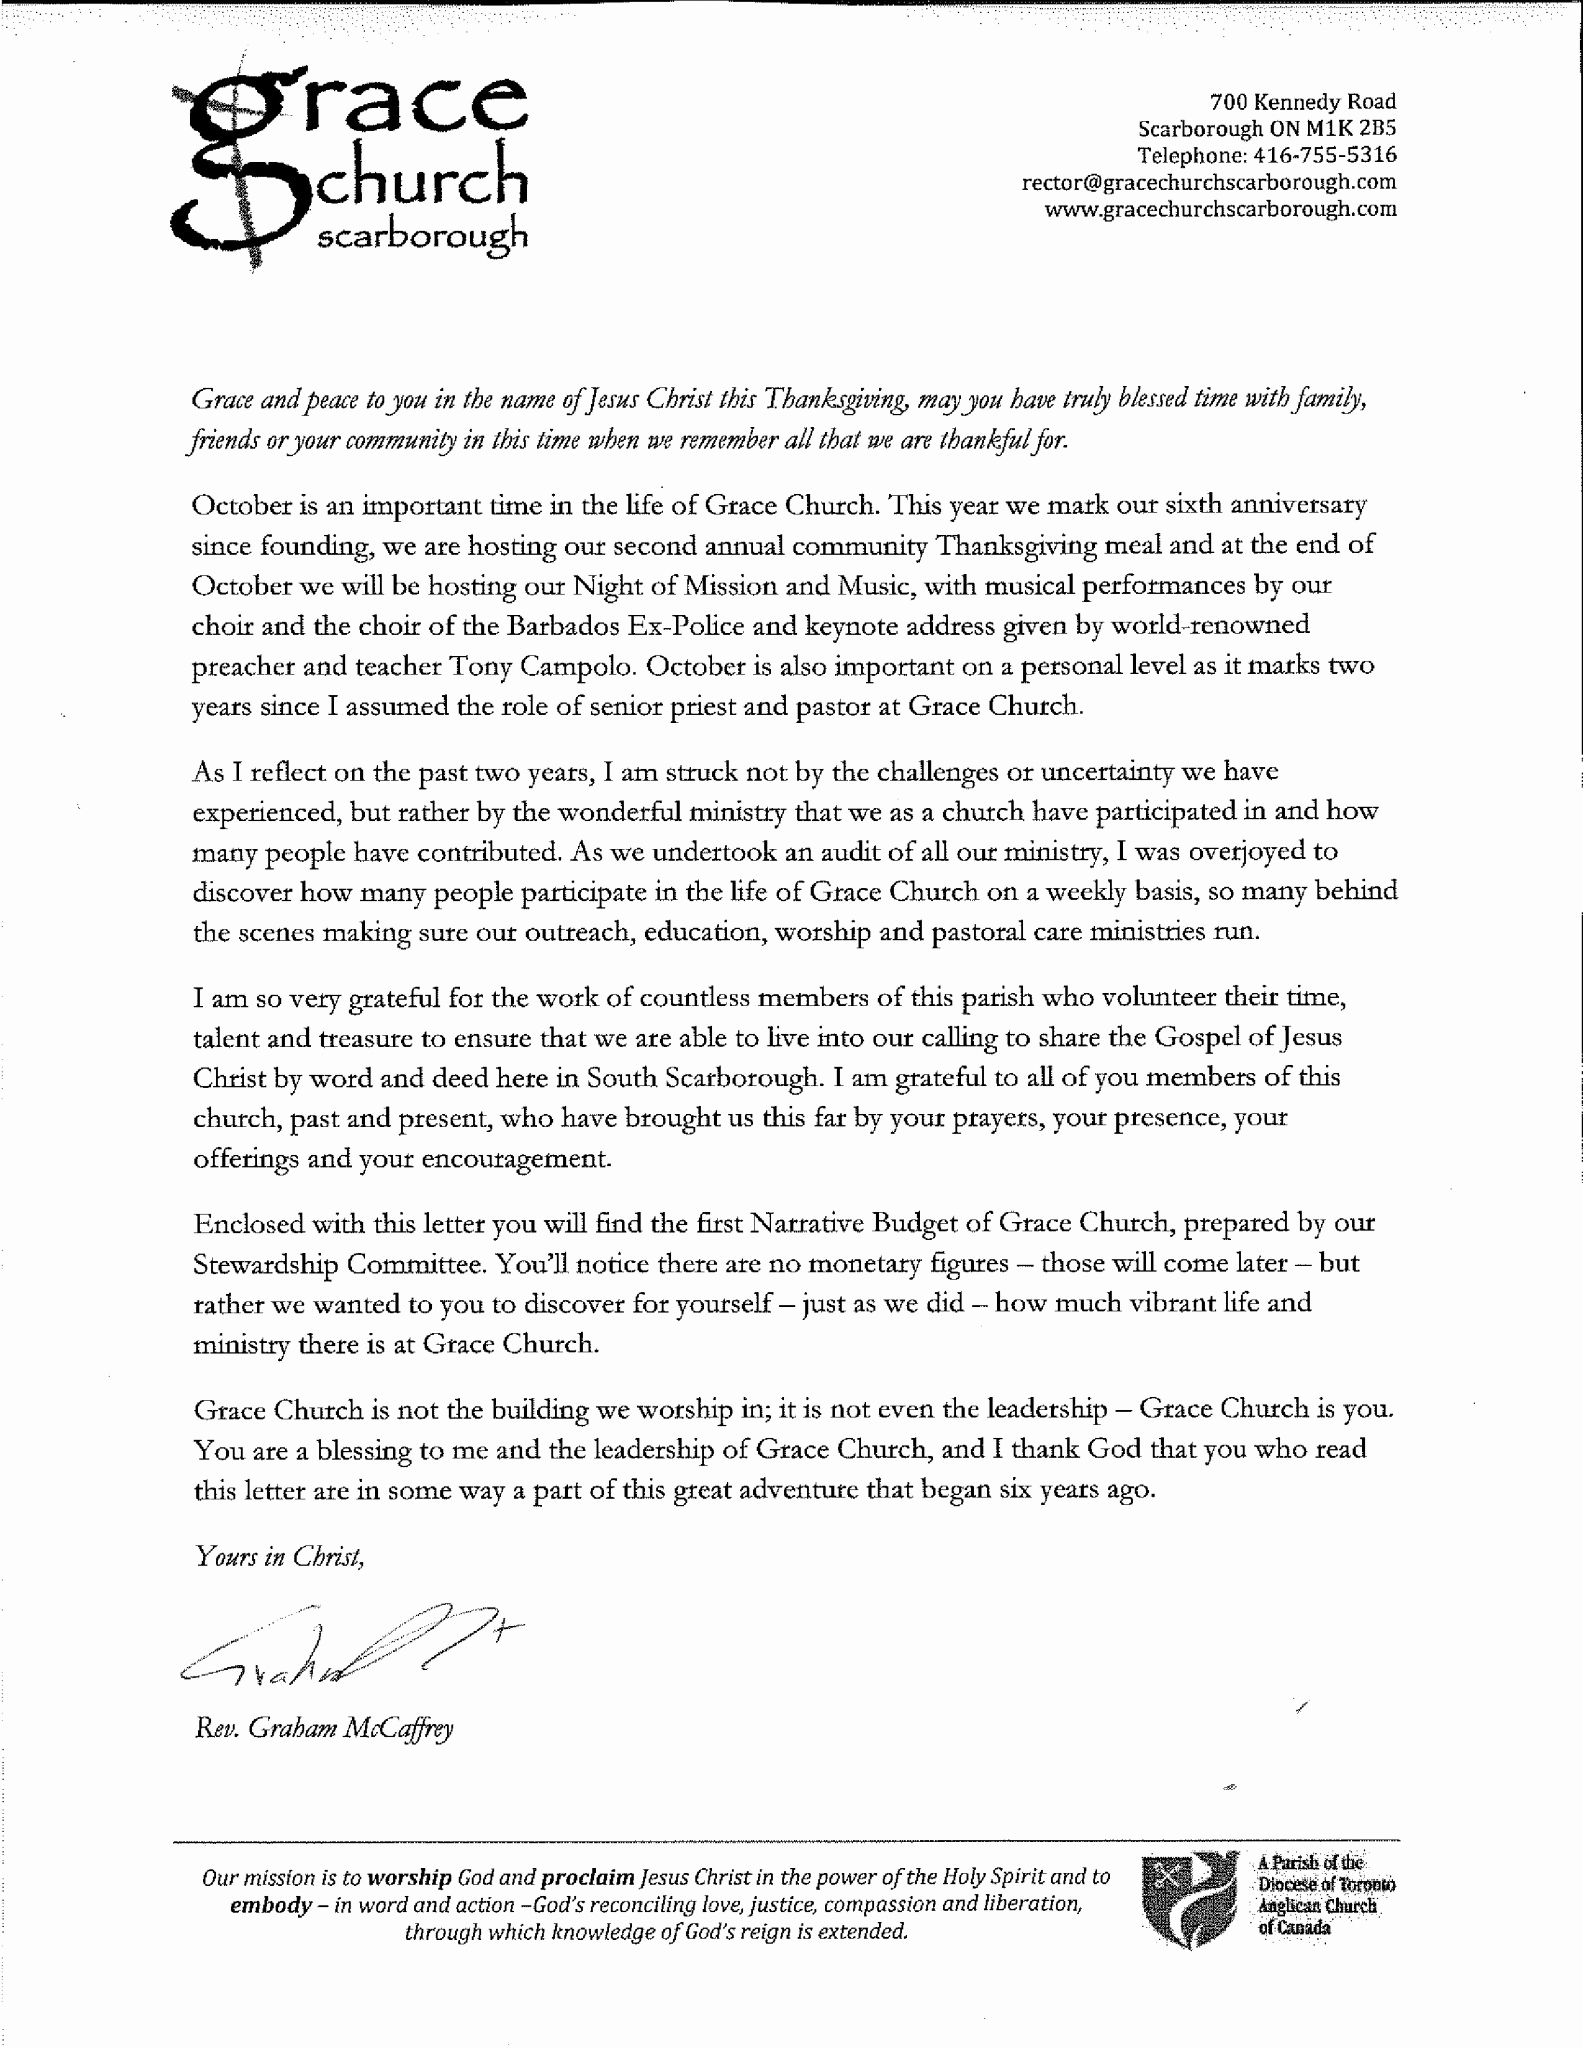 Sunday School Invitation Letter Best Of Thanksgiving Letter 2017 Grace Church Scarborough